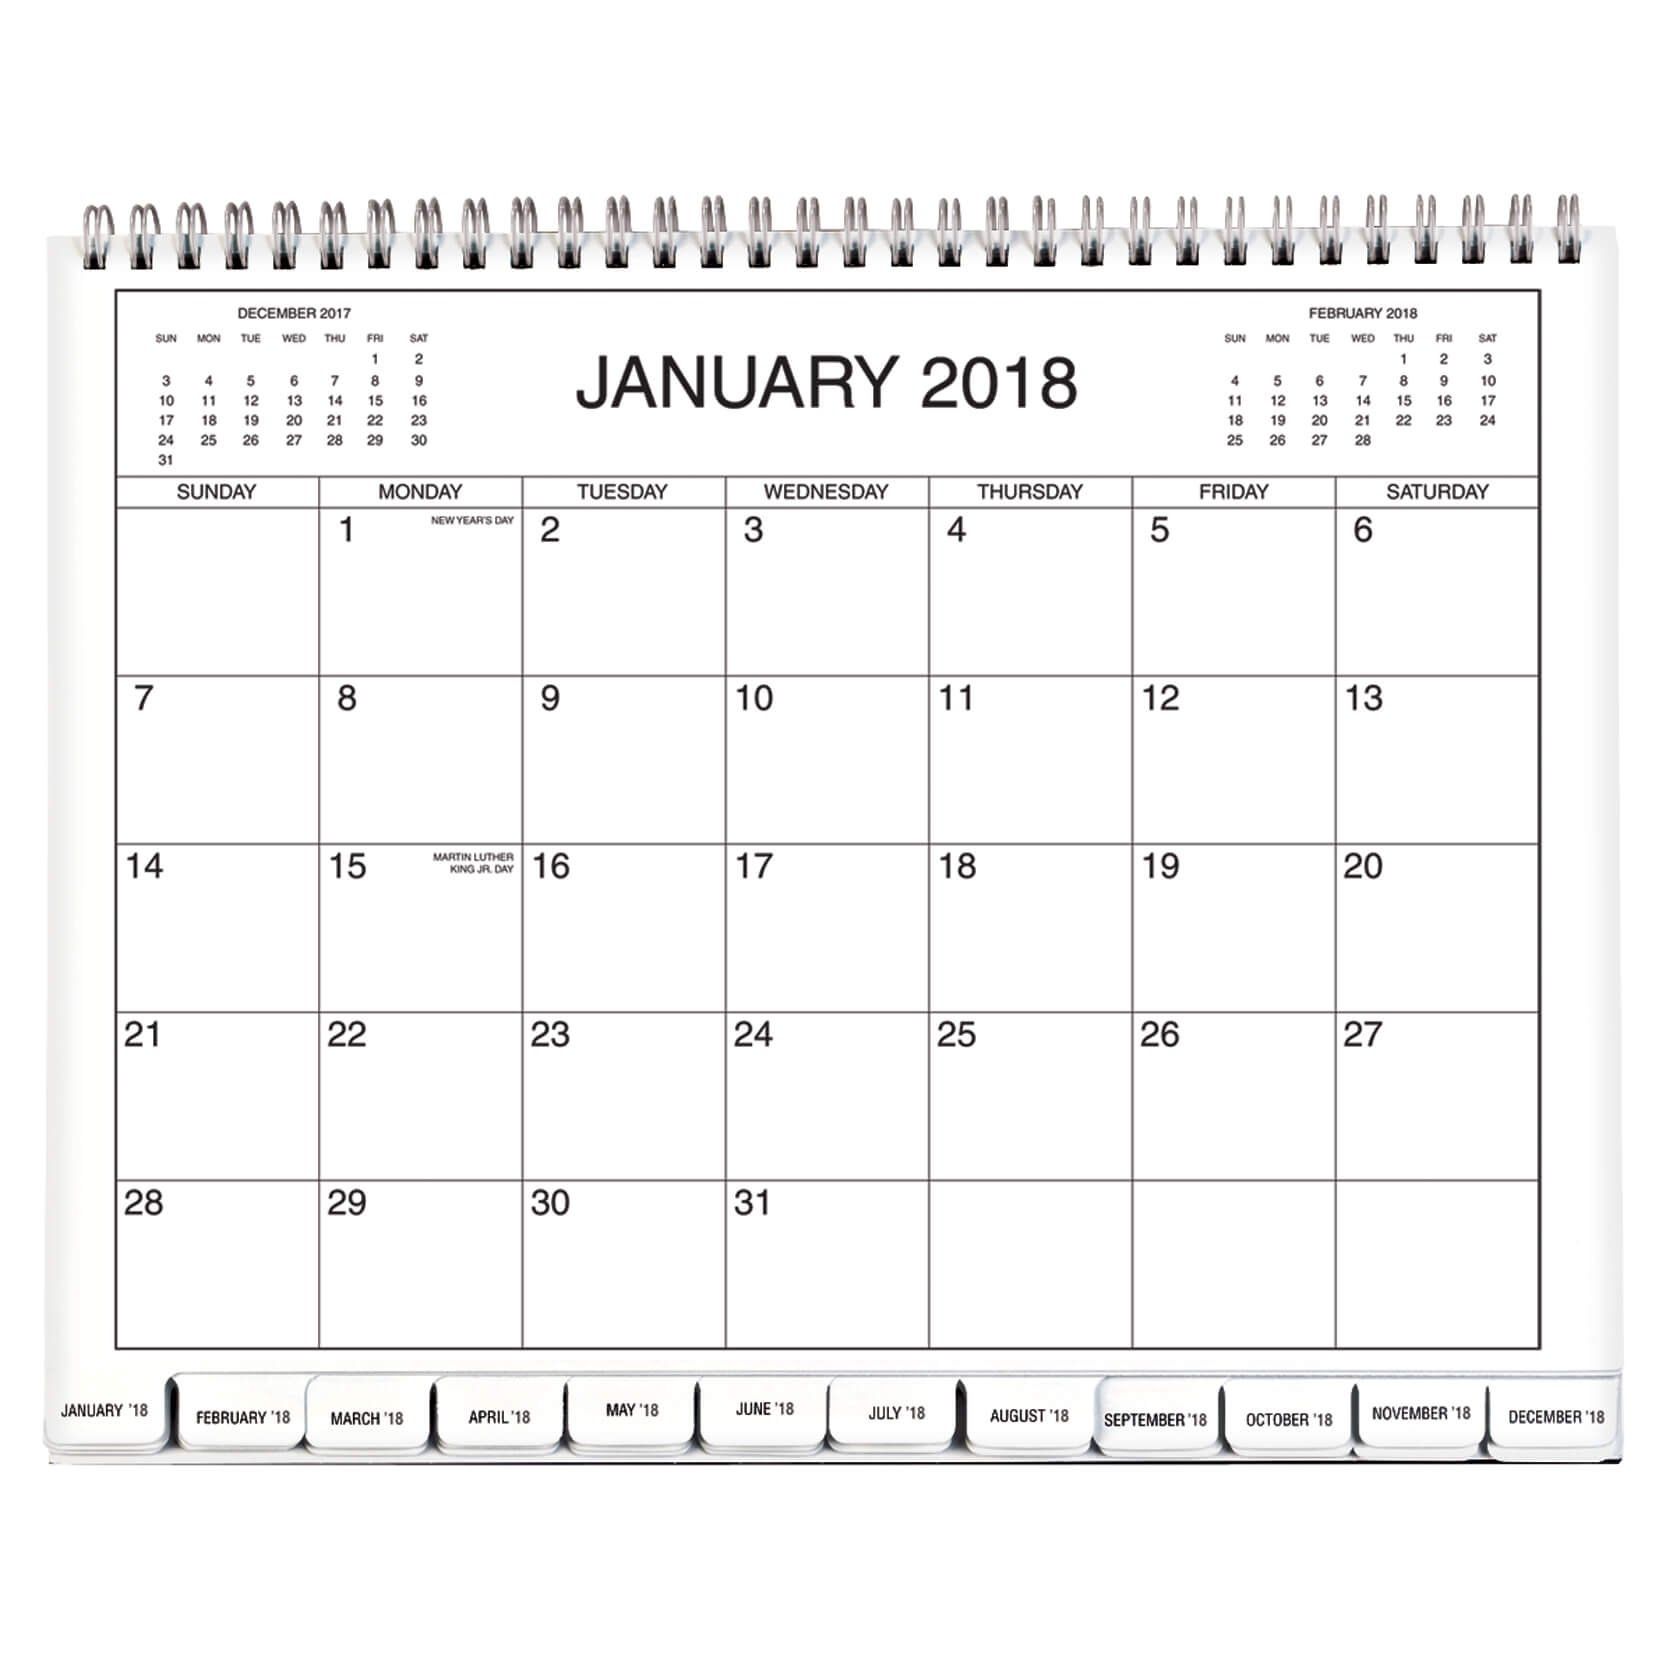 5 Year Calendar 2018-2019-2020-2021-2022 - Monthly Calendar - Walter 5 Year Calendar 2019 To 2023